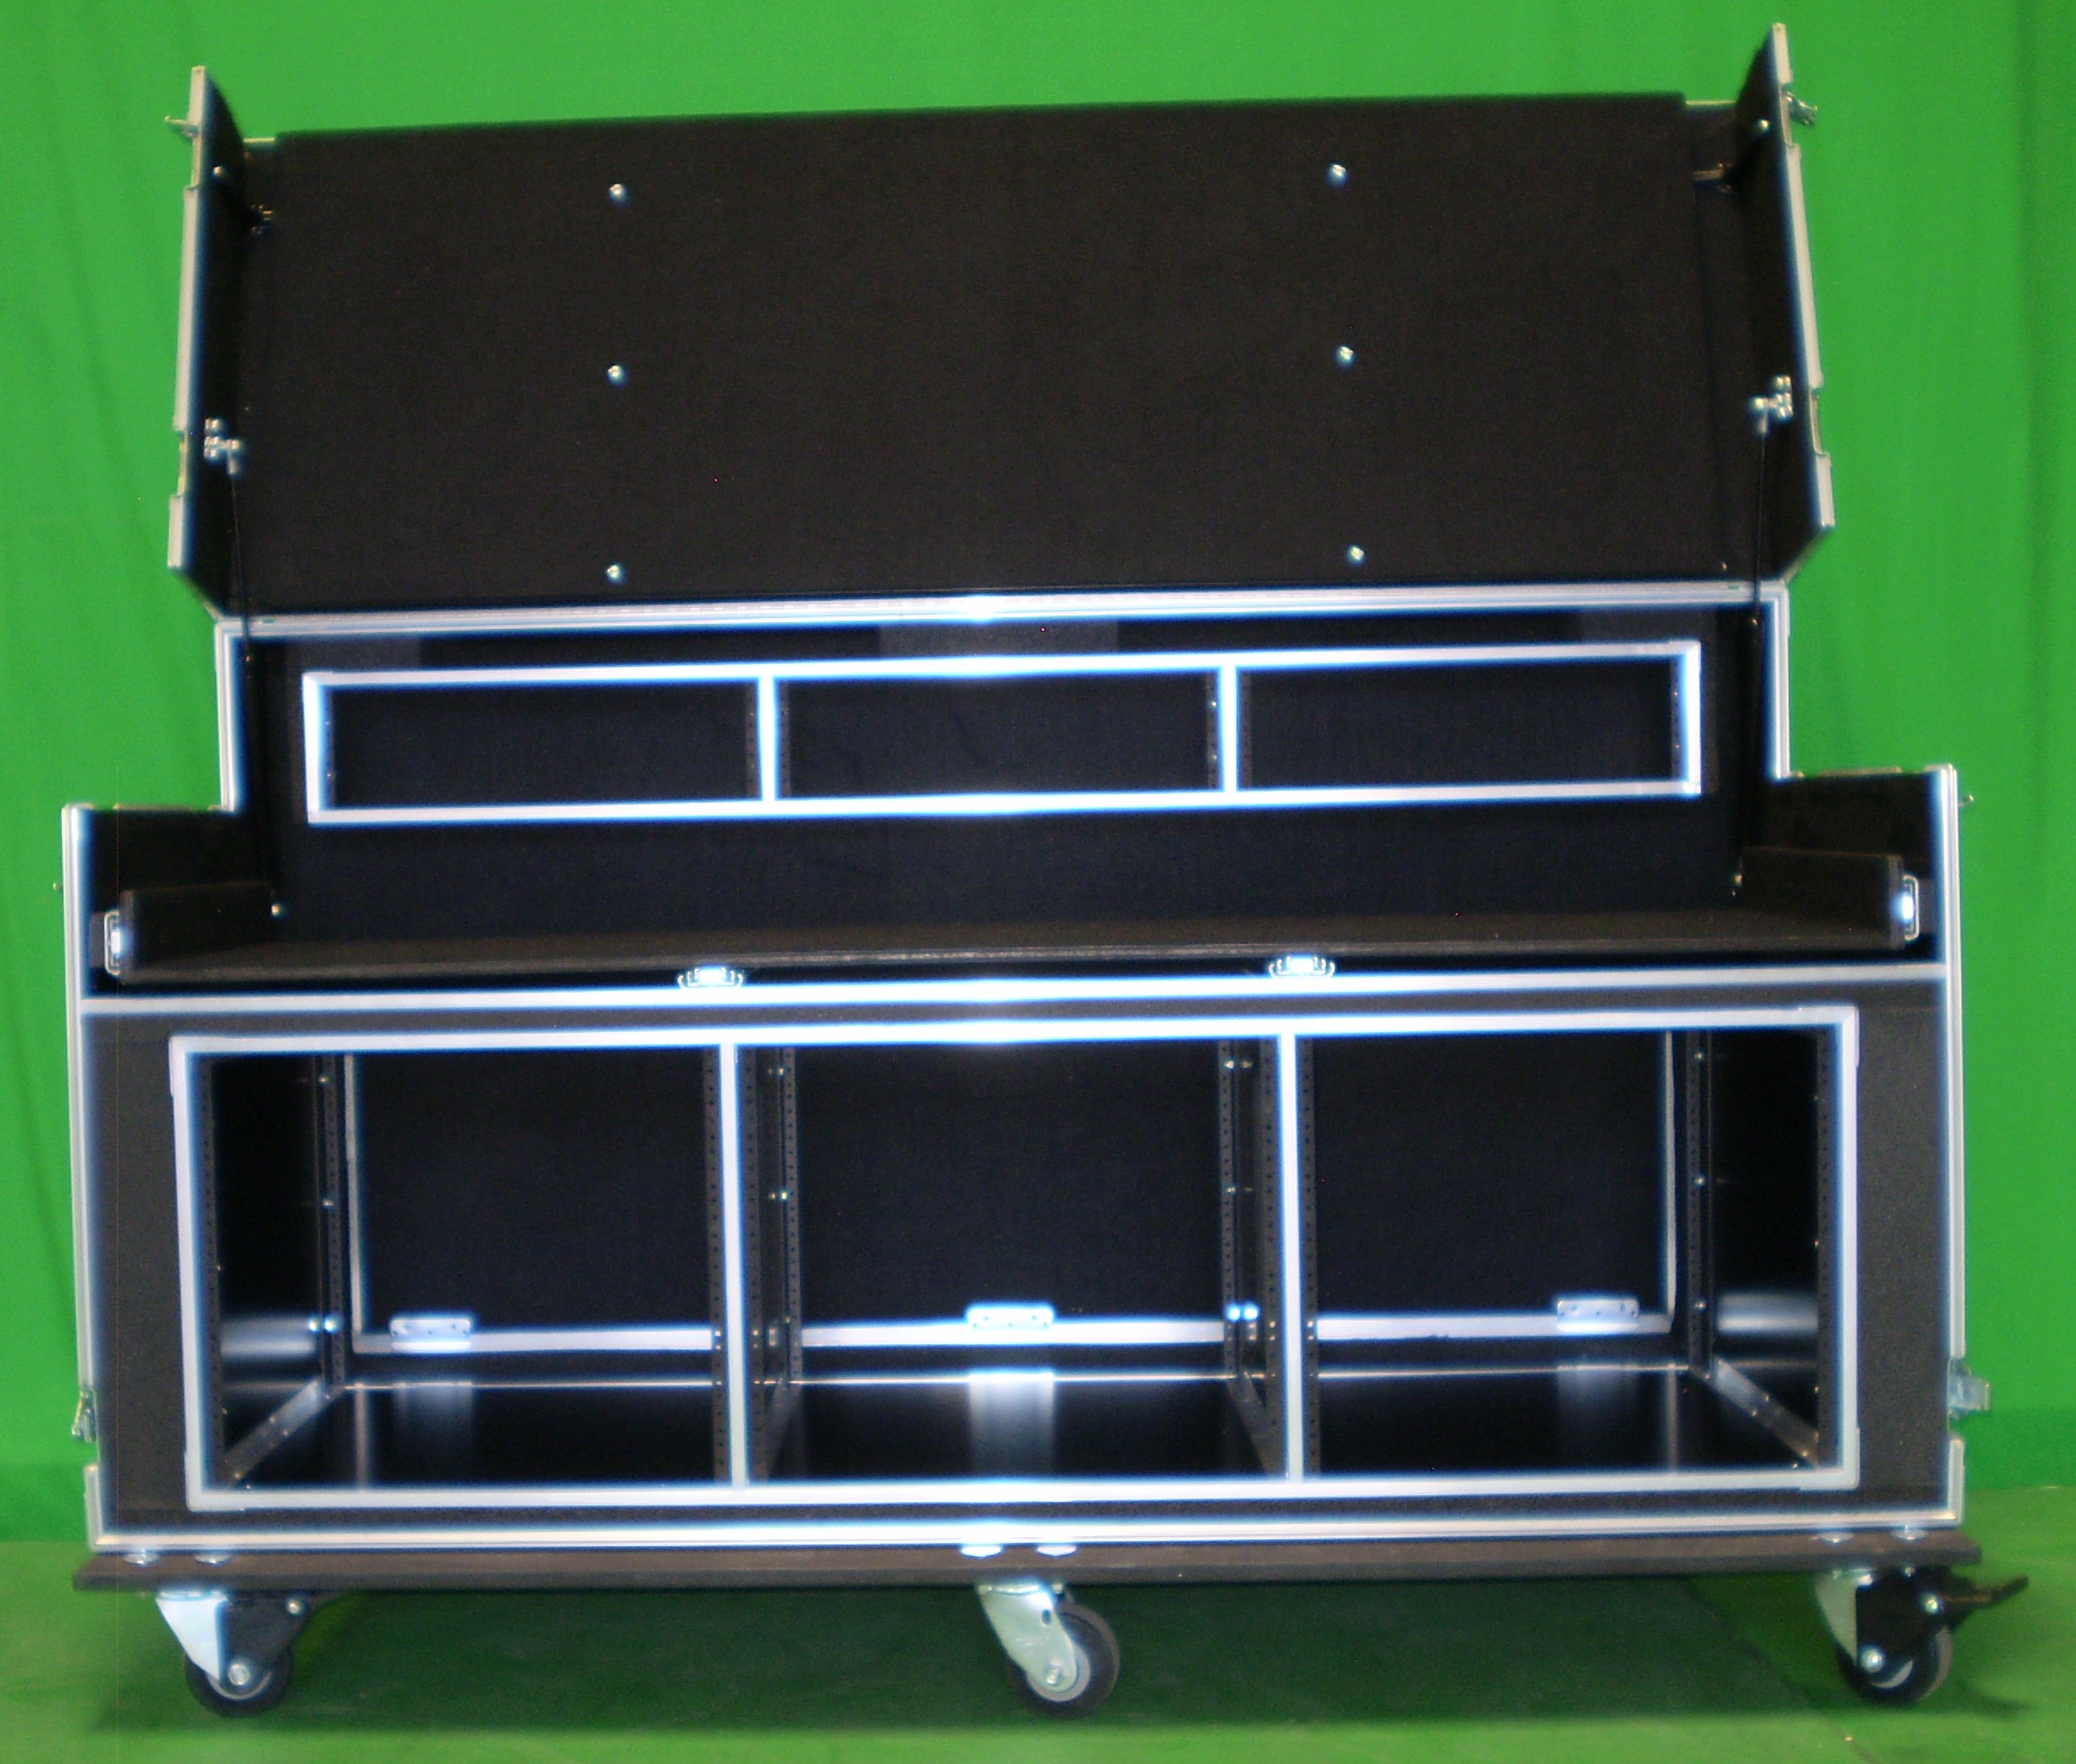 Print # 6189 - Custom Mobile 9-RU Triple-Wide Rack-Mount Video Workstation with 3-RU Top Rack Shells By Nelson Case Corp